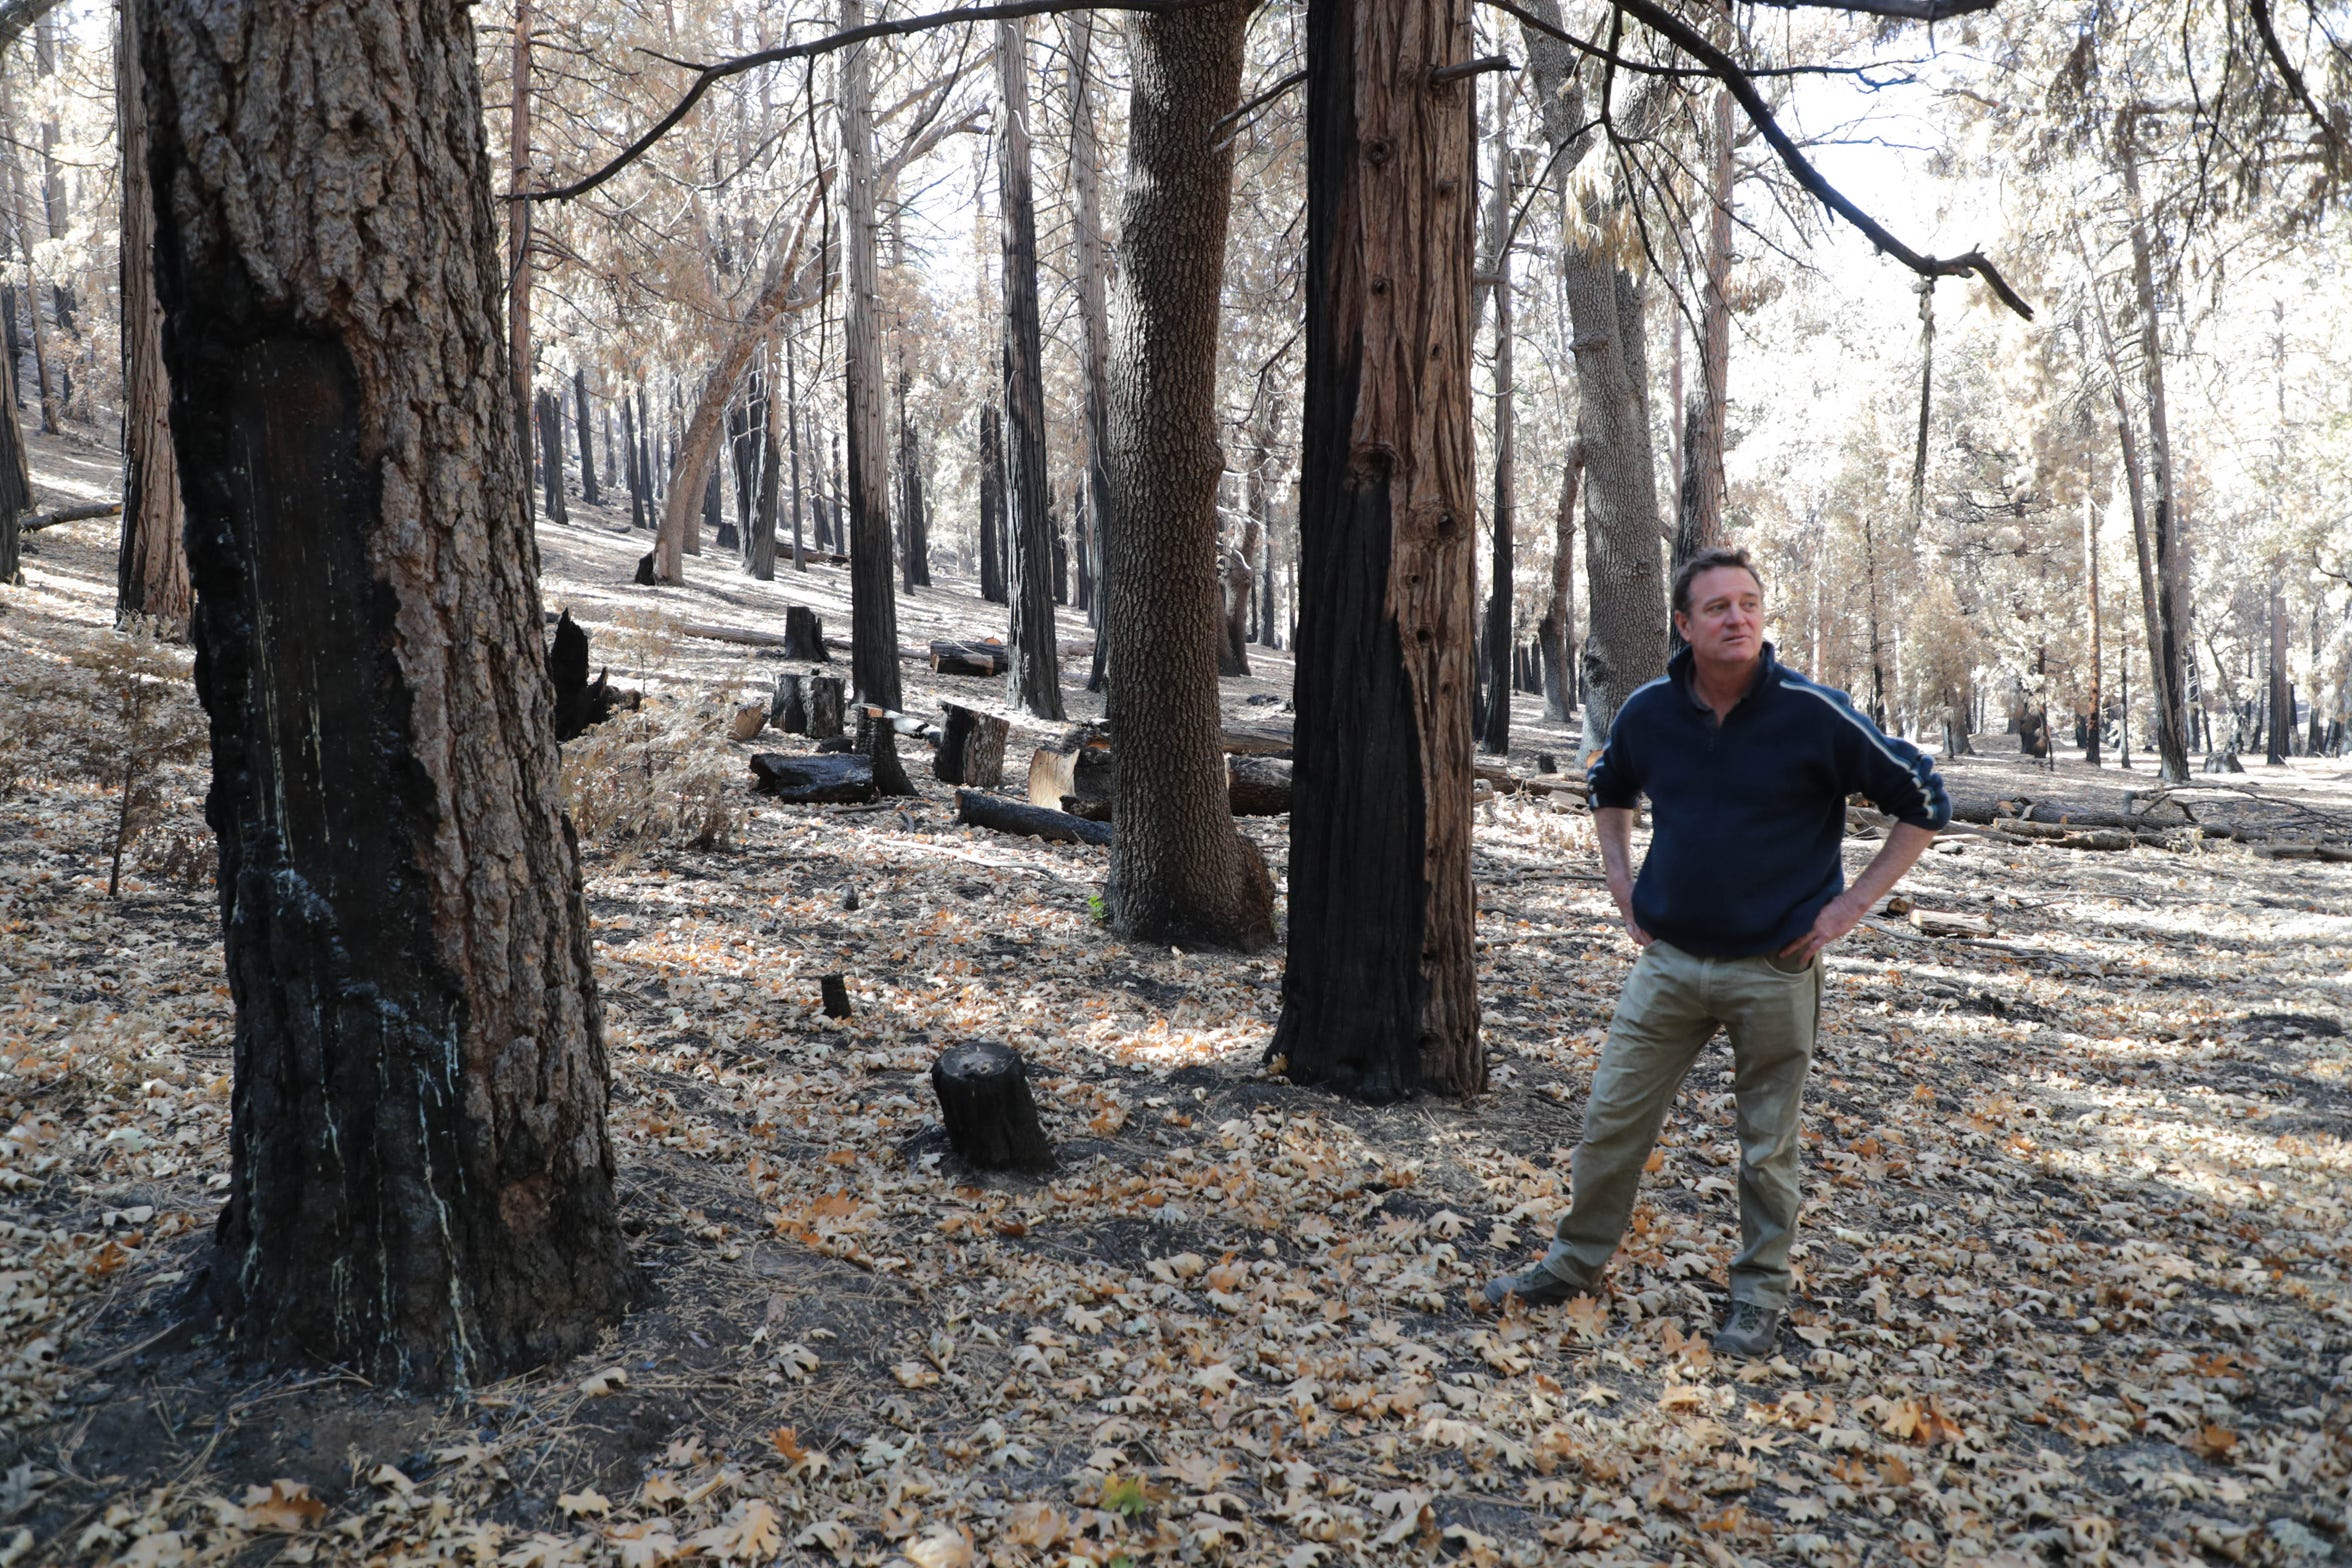 Idyllwild Forest Health Project founder Mark Yardas stands in an area of the forest that was thinned before the Cranston Fire in Idyllwild, Calif. The U.S. Forest Service lit a back burn in this grove on the first day of the blaze.